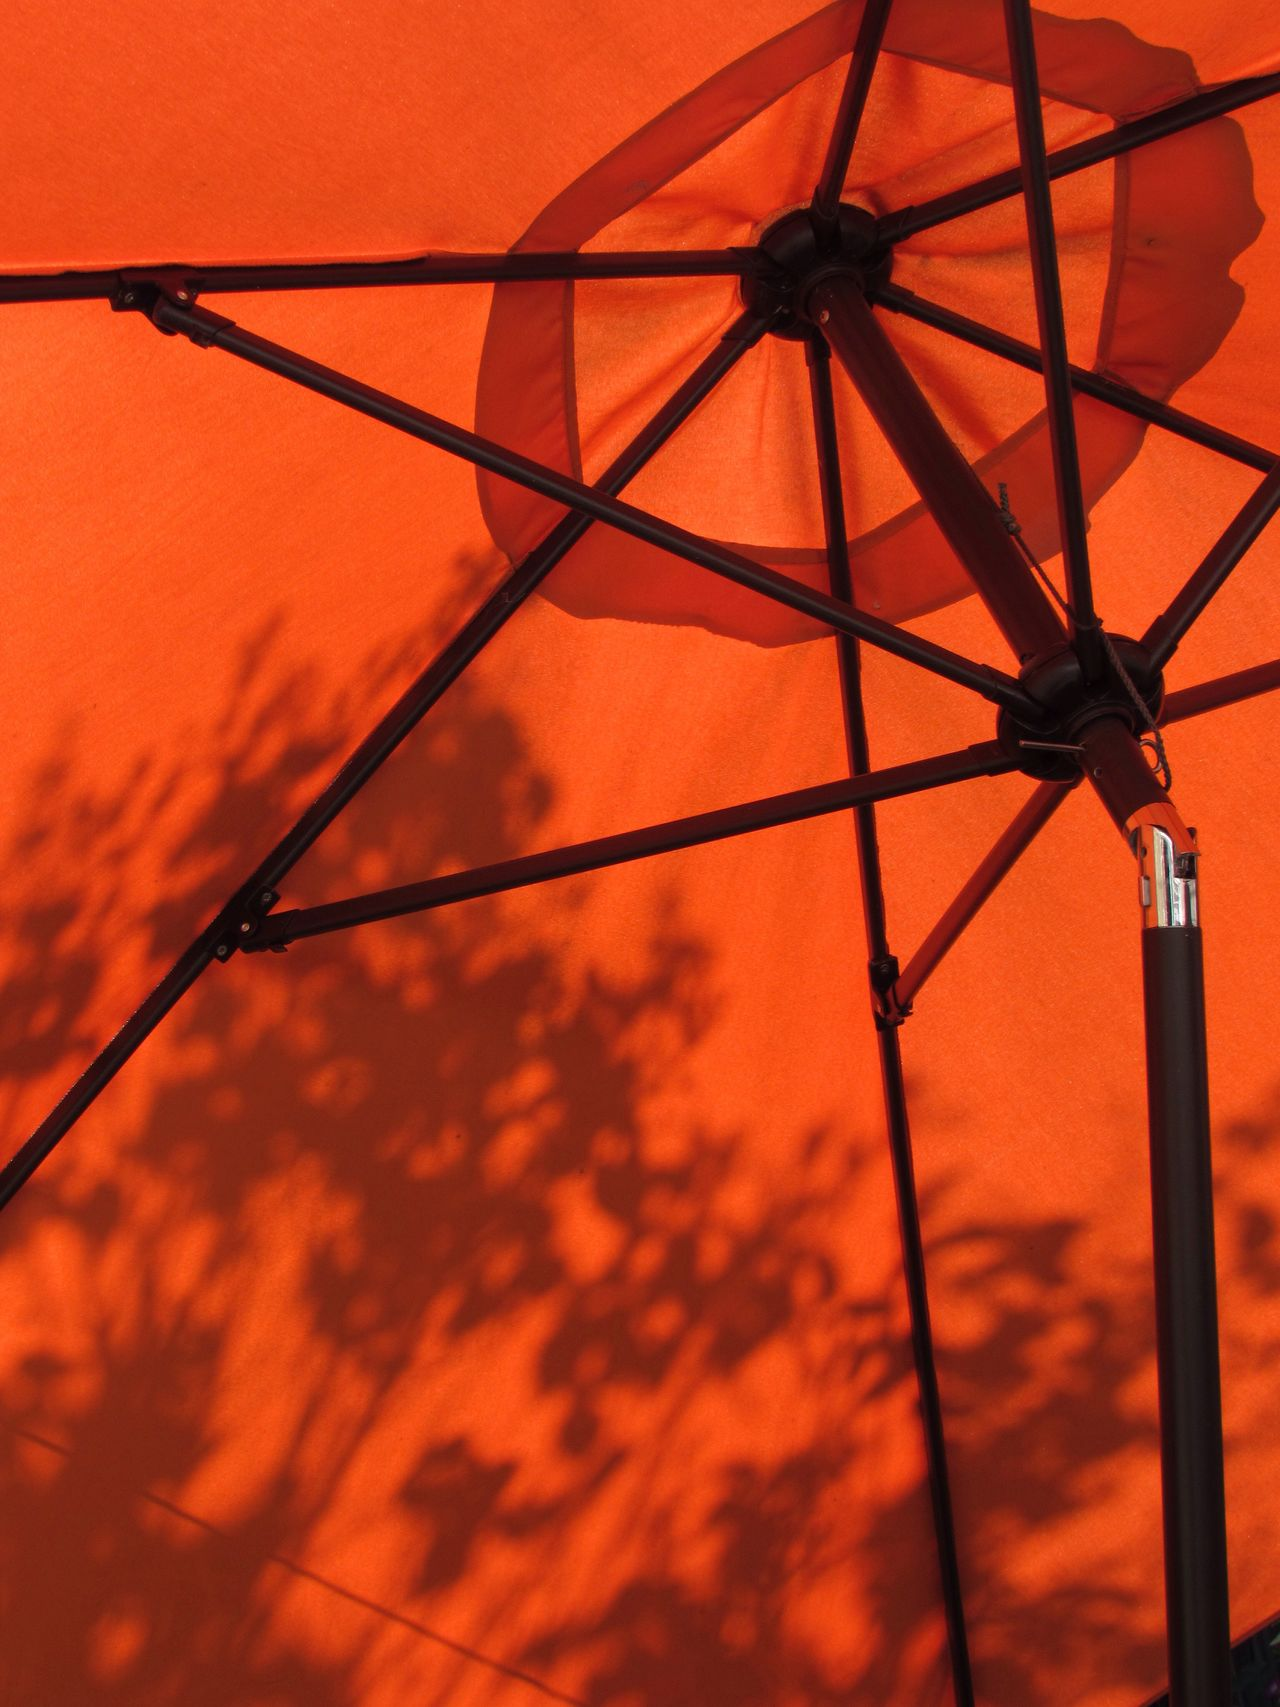 Lumière Orange Color Orange Summertime Lifestyles Life Is A Beach From My Point Of View Light